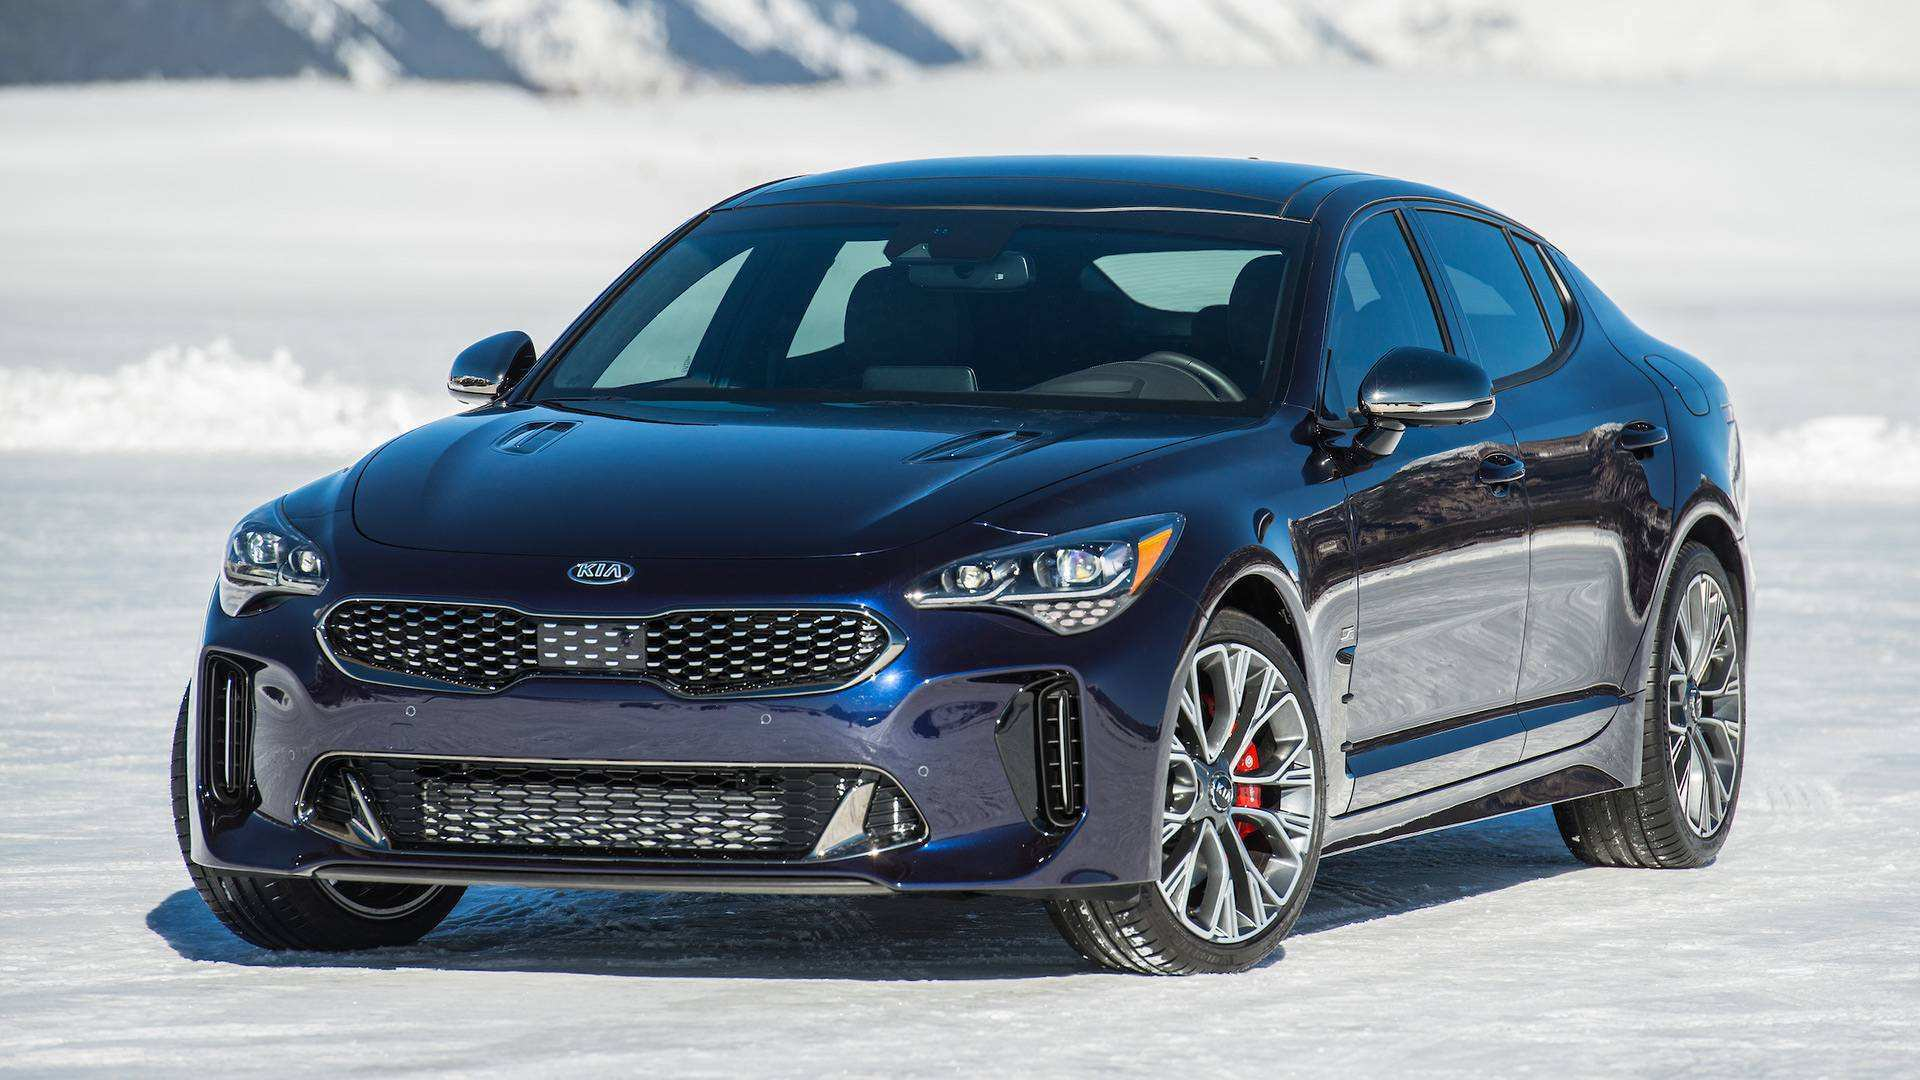 53 All New Kia Stinger 2020 Update Configurations